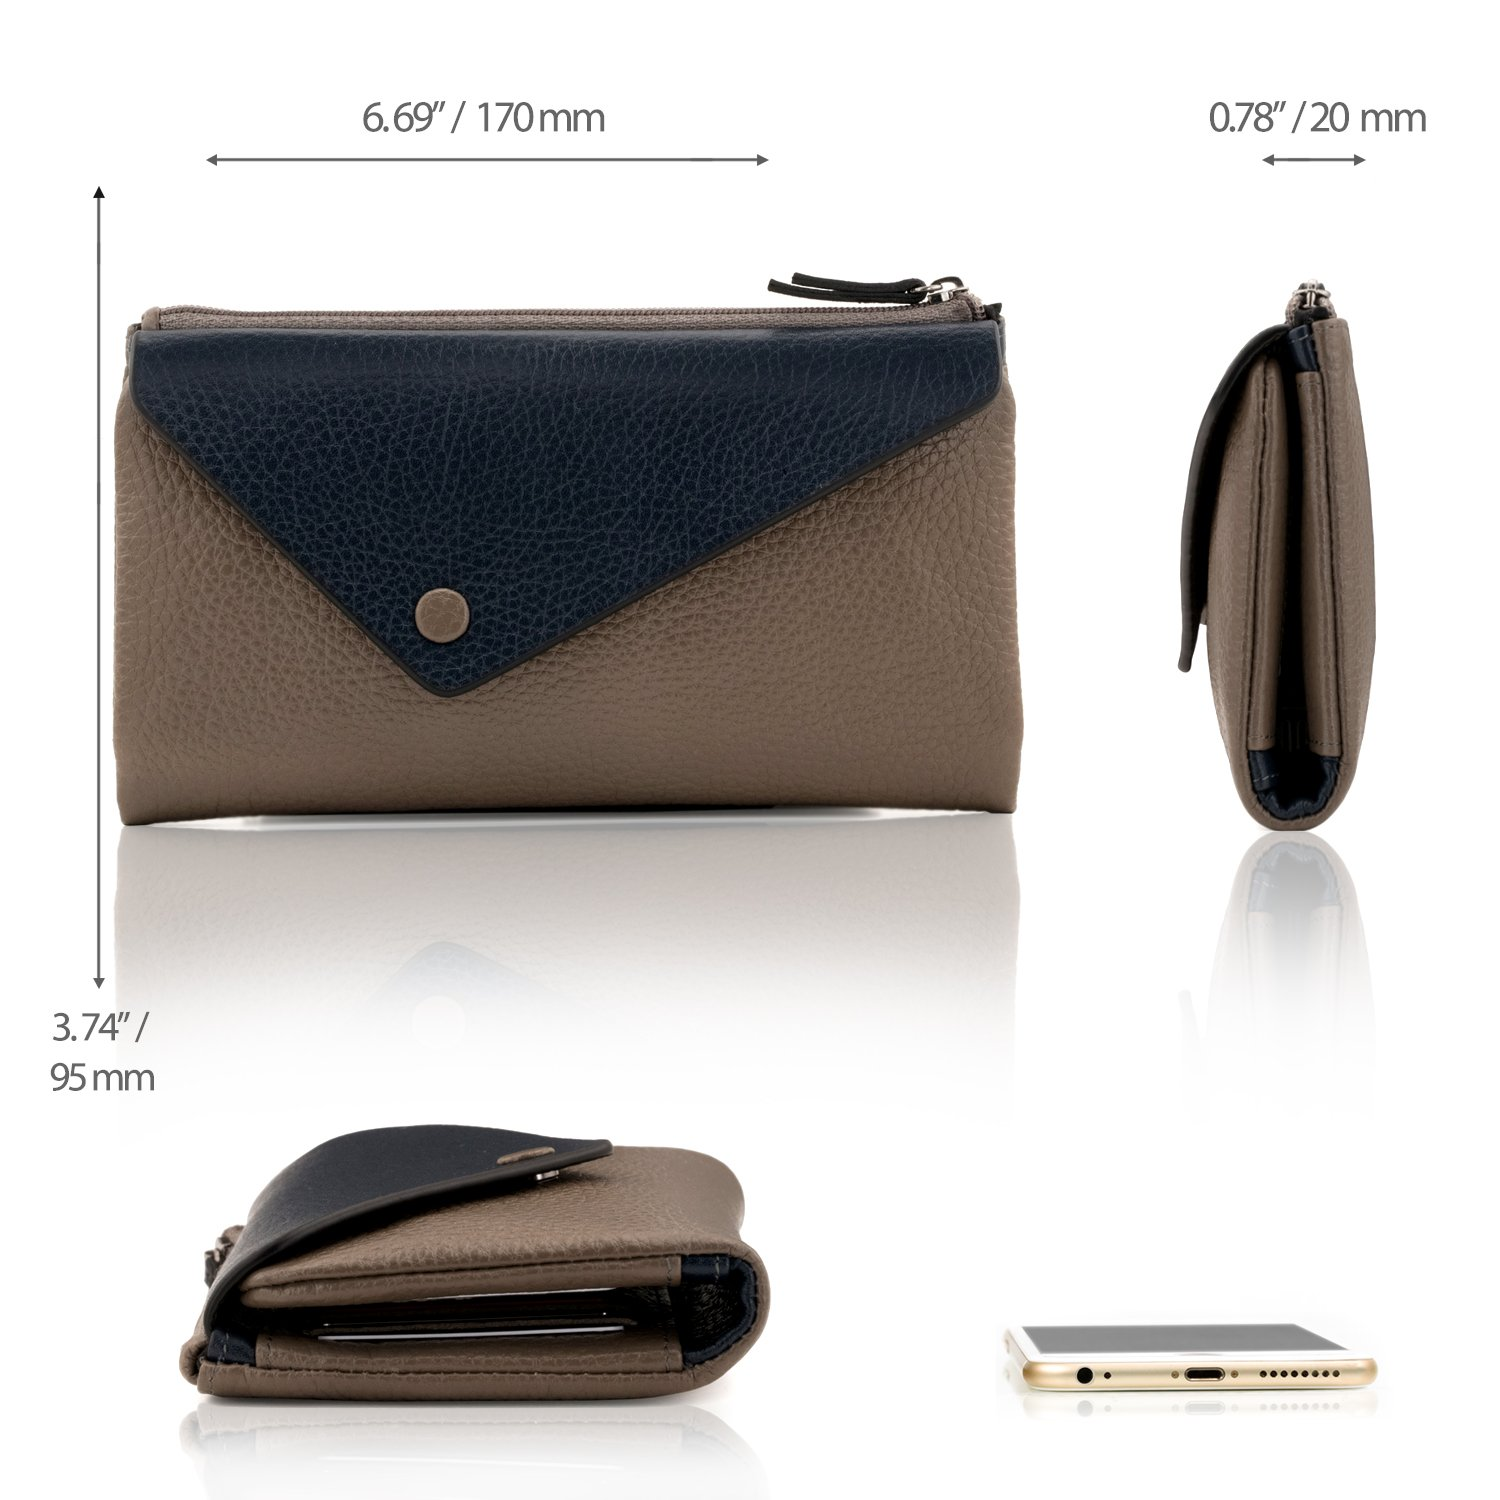 OTTO Genuine Leather Envelope Wallet with Phone Compatible Slots - RFID Blocking - Unisex (Navy Blue & Mink) by OTTO Leather (Image #2)